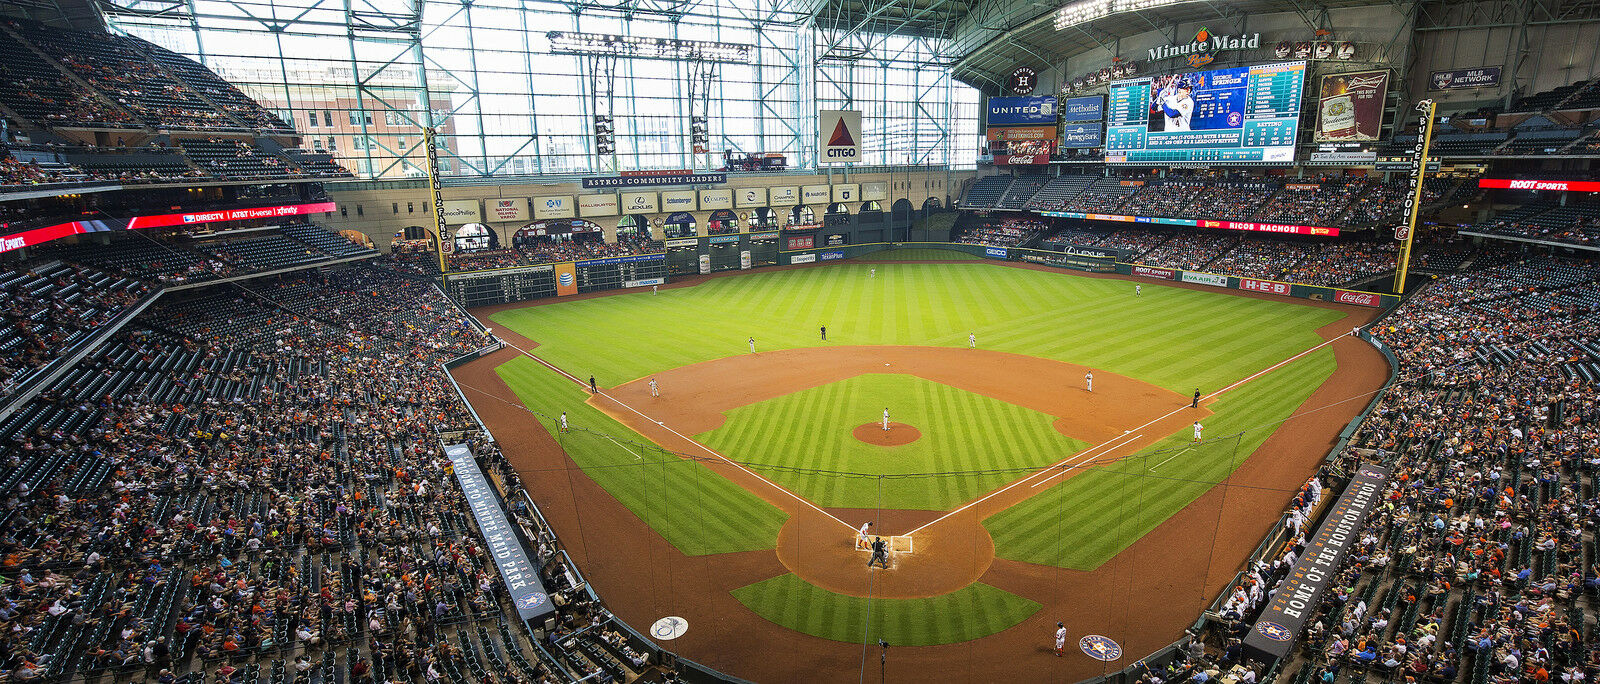 Houston Astros Opening Day